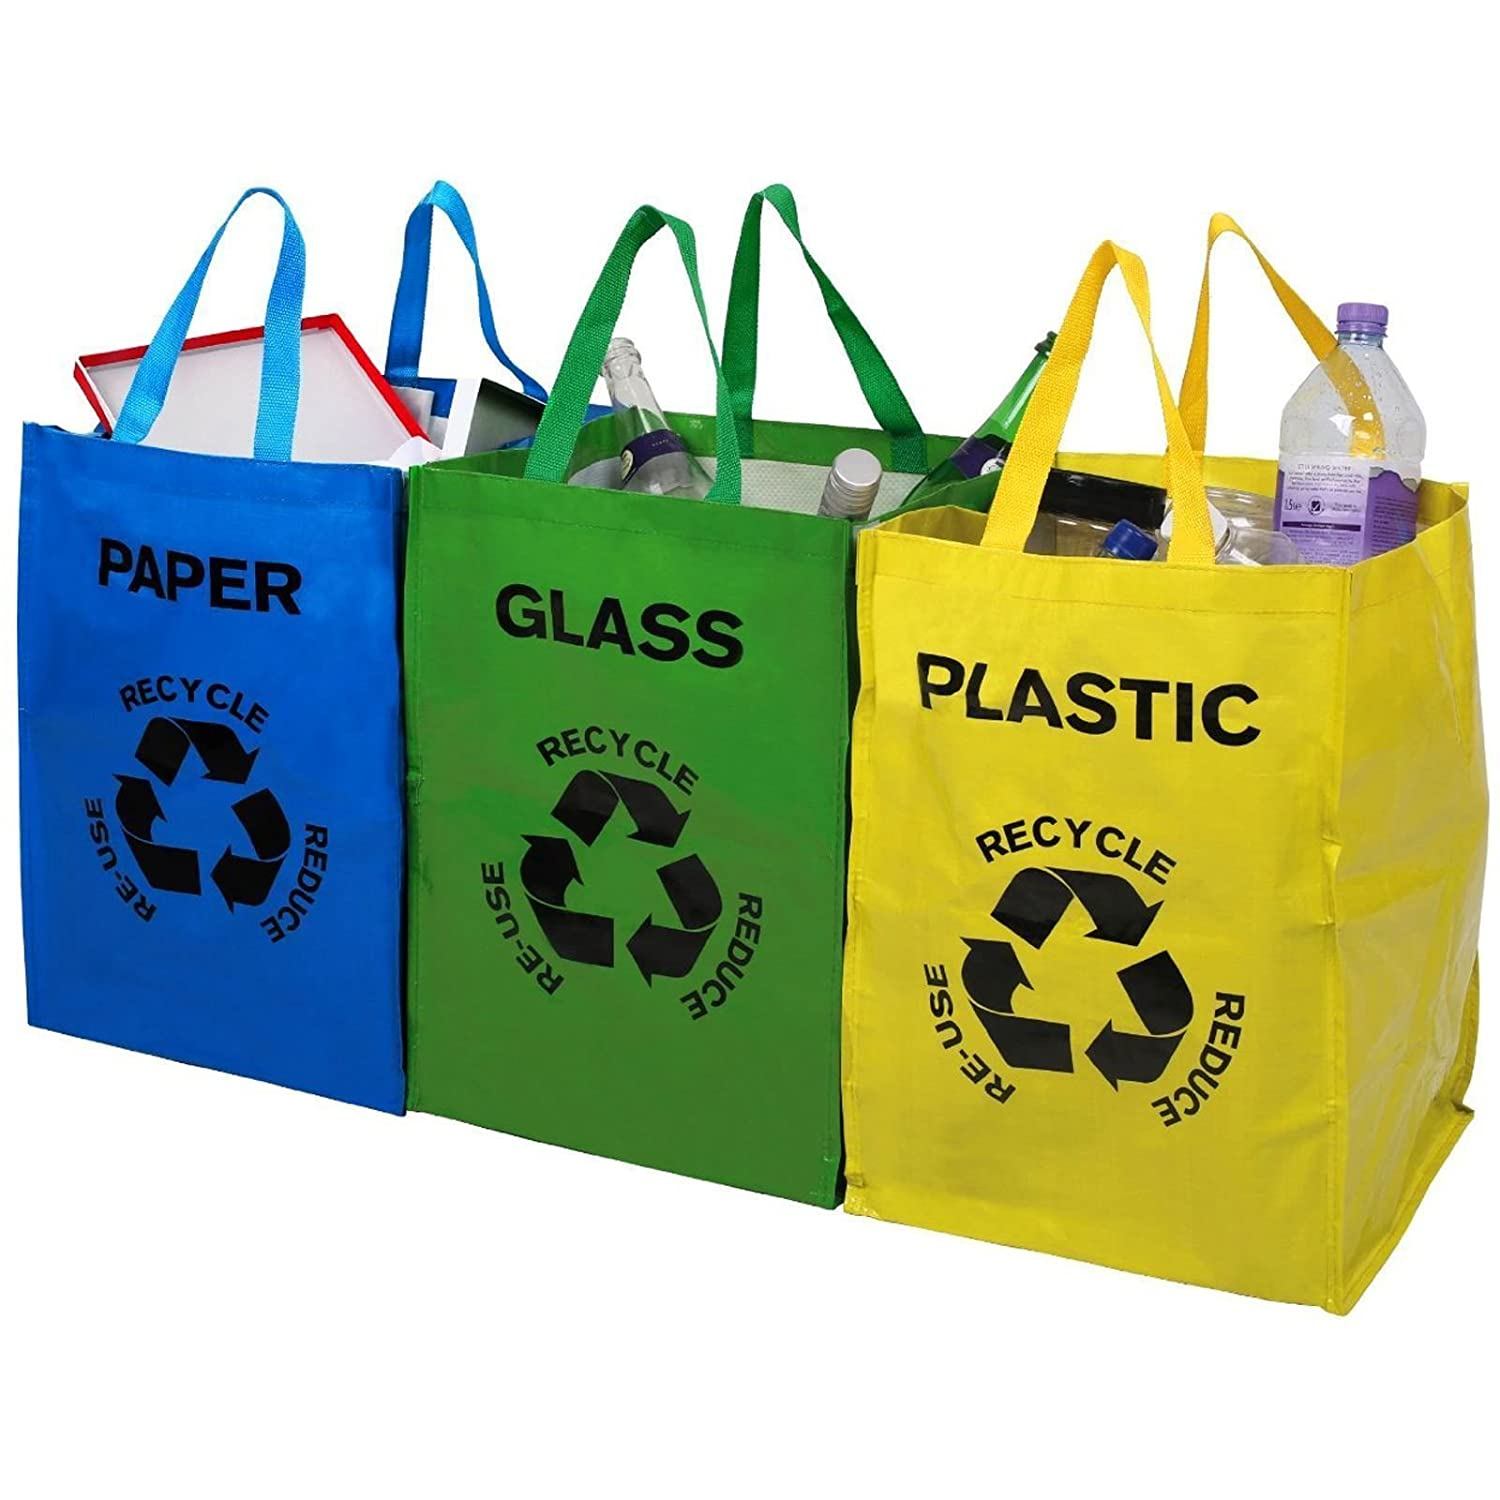 Set Of 3 Recycling Recycle Bags Colour Coded Plastic Glass Paper Storage Bin Bag Guilty Gadgets